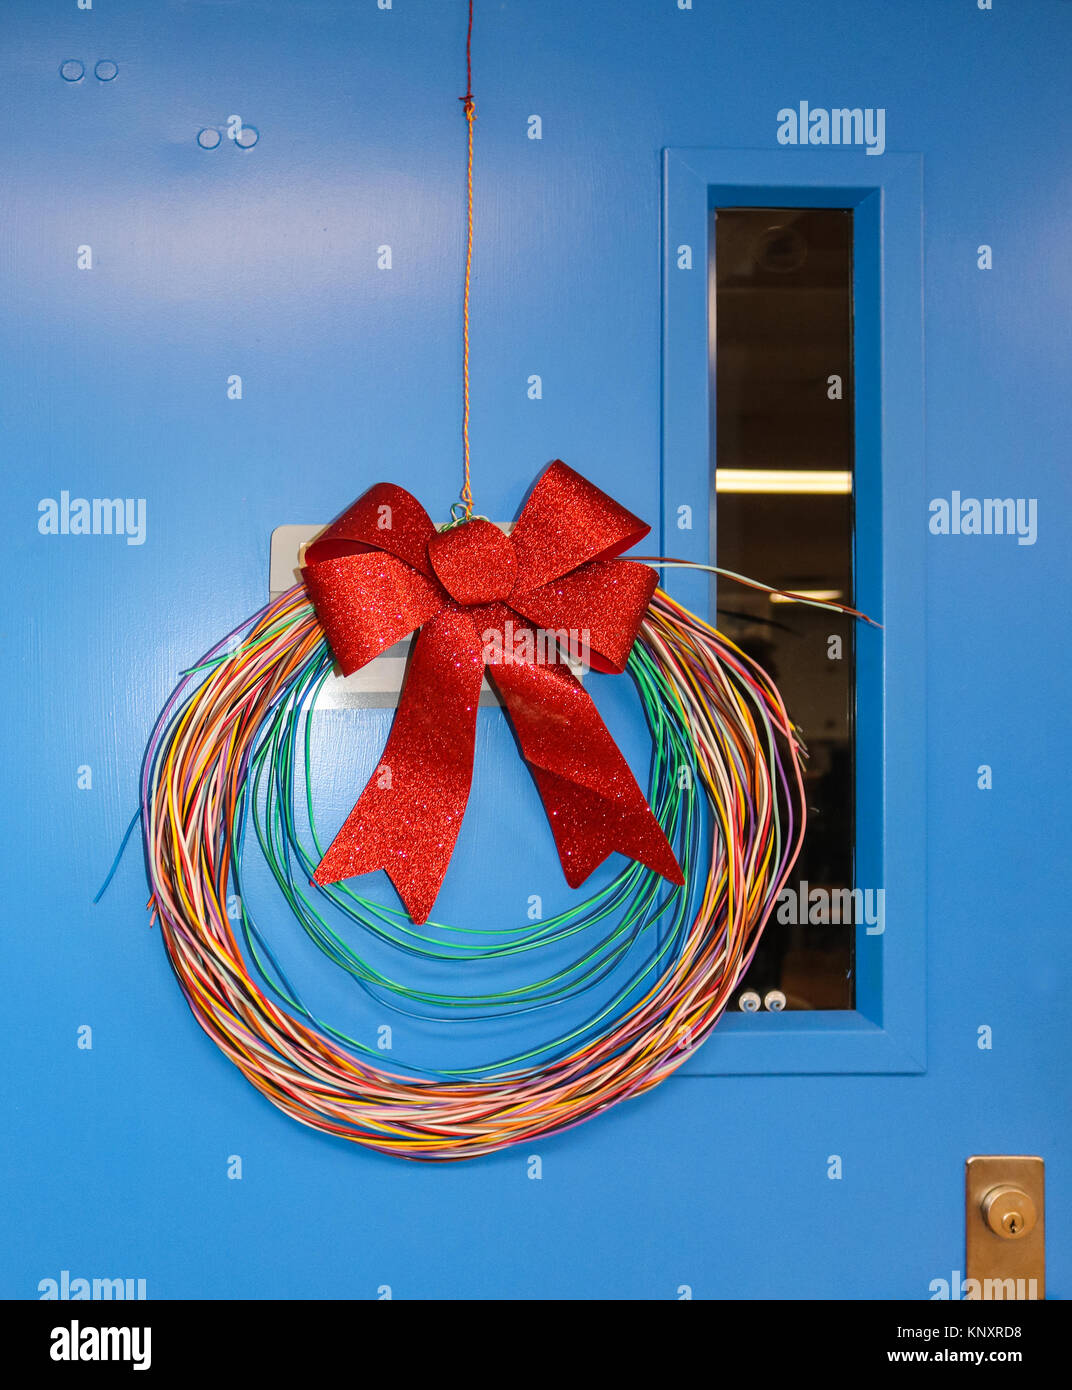 Network Cabling Christmas wreath with glittery bow hung on blue door with googly stick on eyeballs staring out - Stock Image